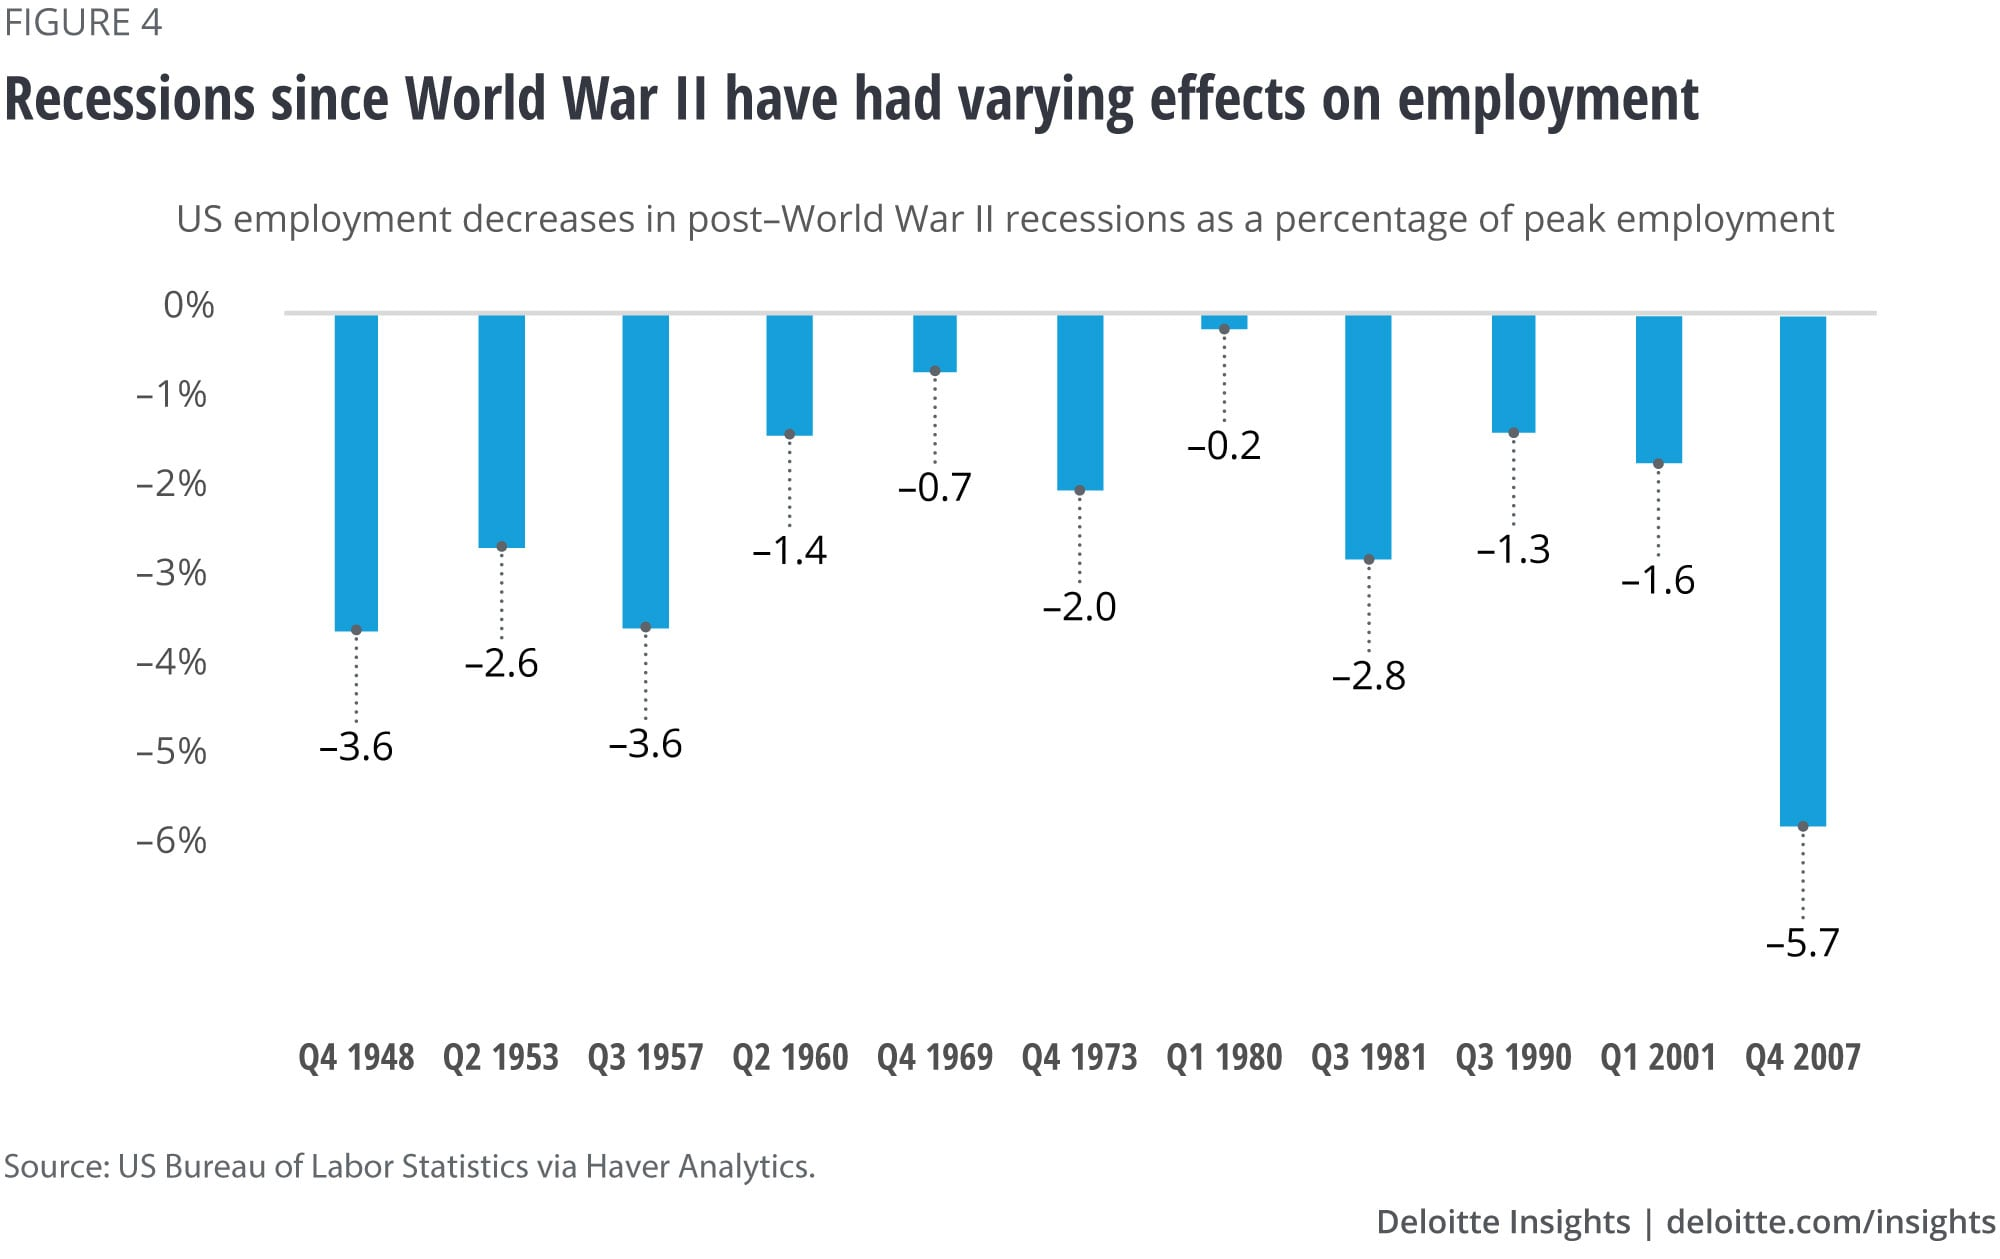 Recessions since World War II have had varying effects on employment